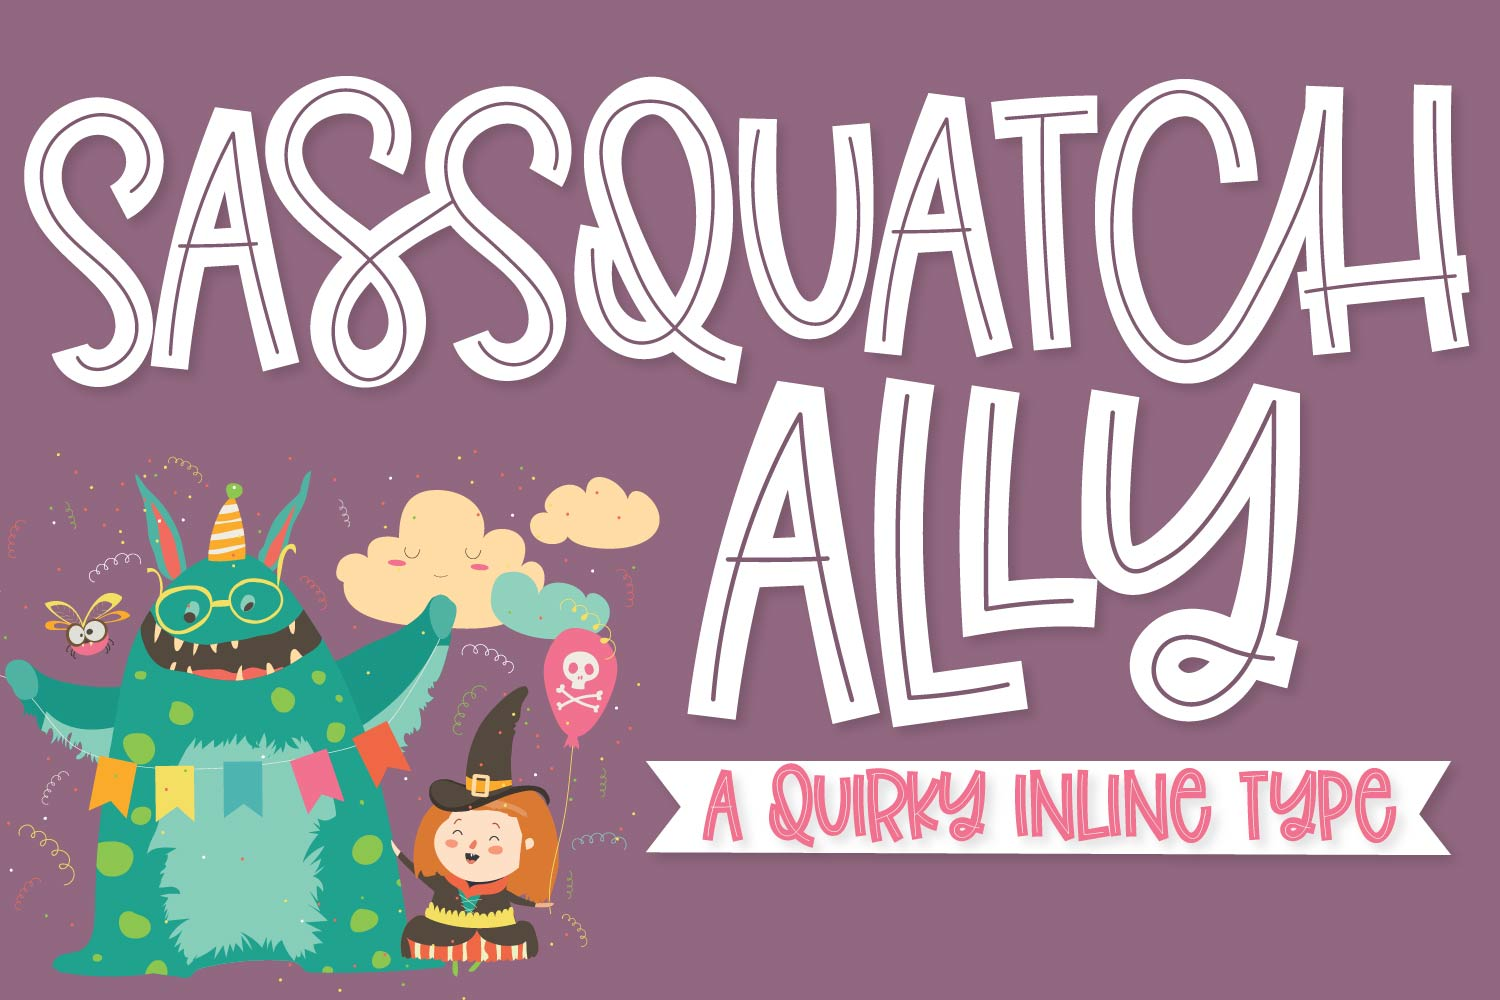 Sassquatch Ally - A Quirky Inline Type example image 1